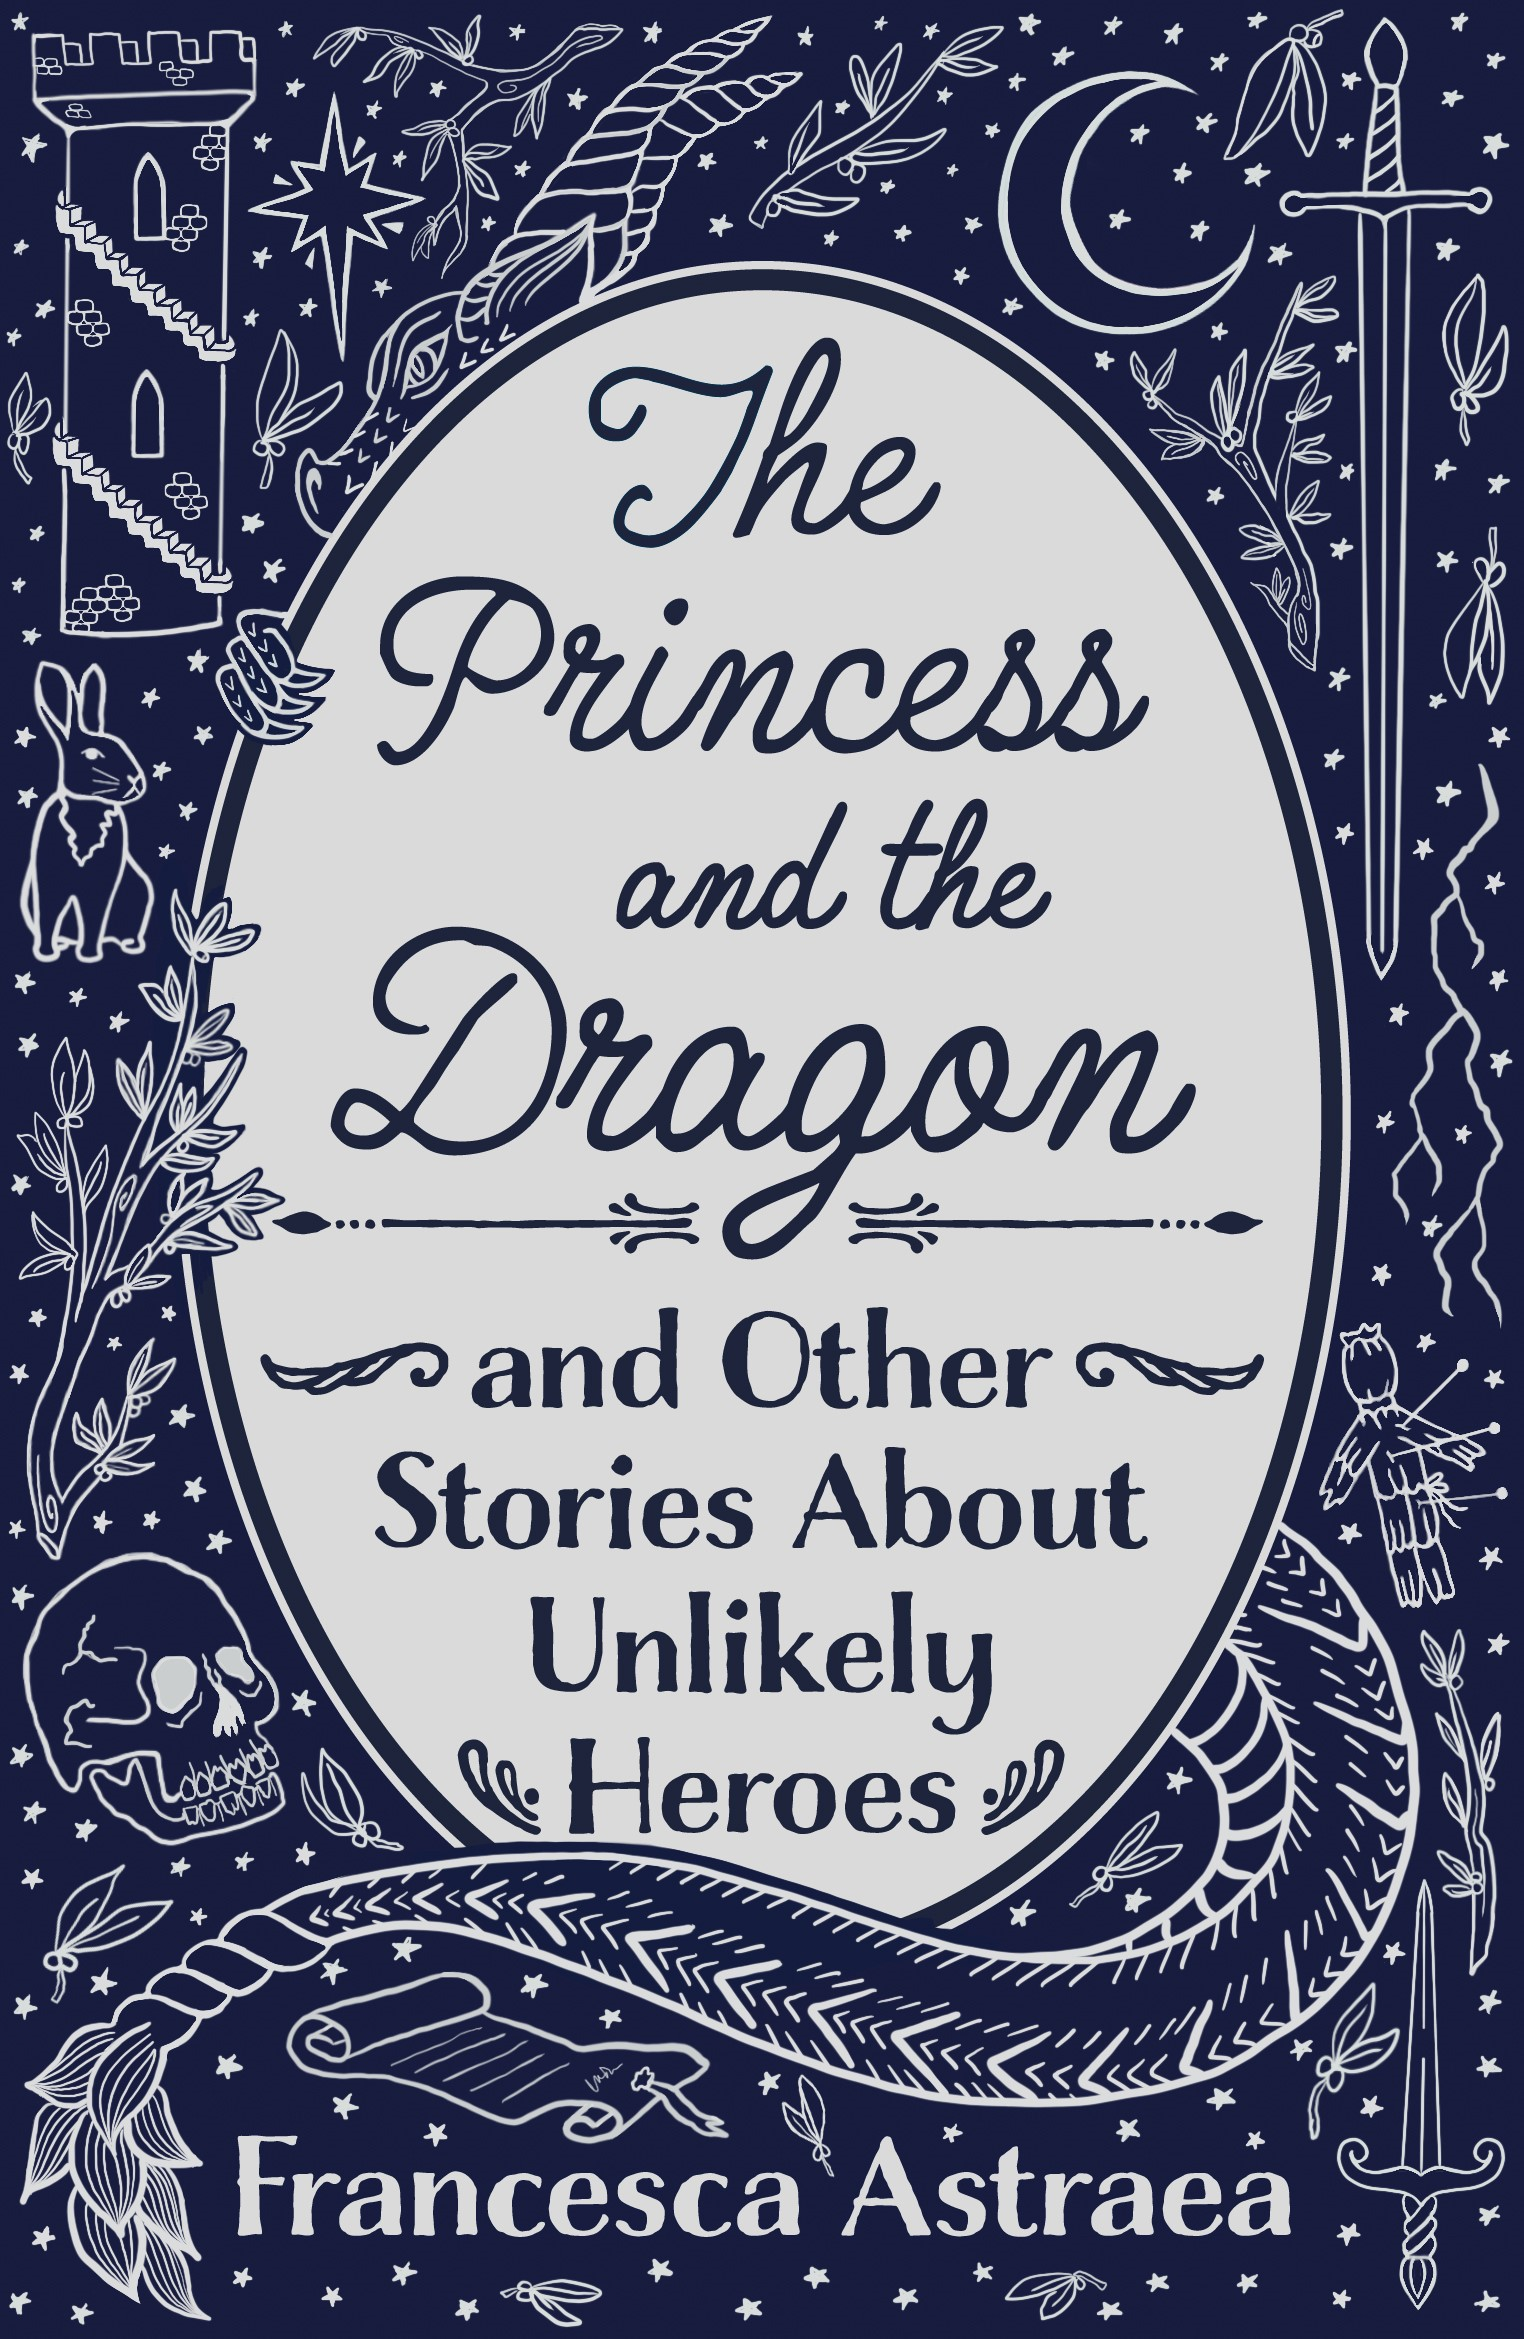 Cover for 'The Princess and the Dragon and Other Stories About Unlikely Heroes' by Francesca Astraea